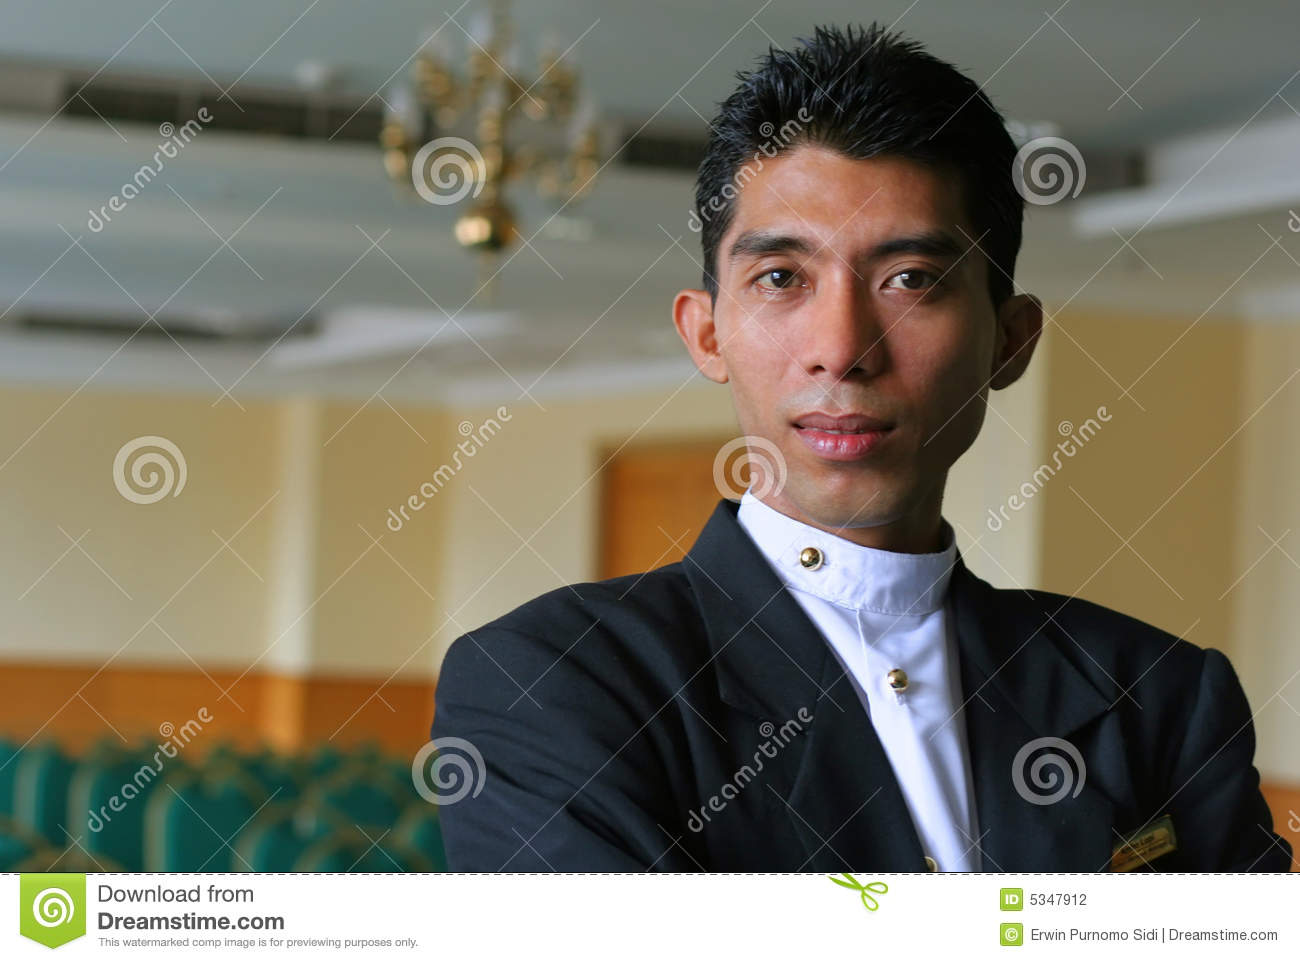 banquet manager stock photography image 5347912